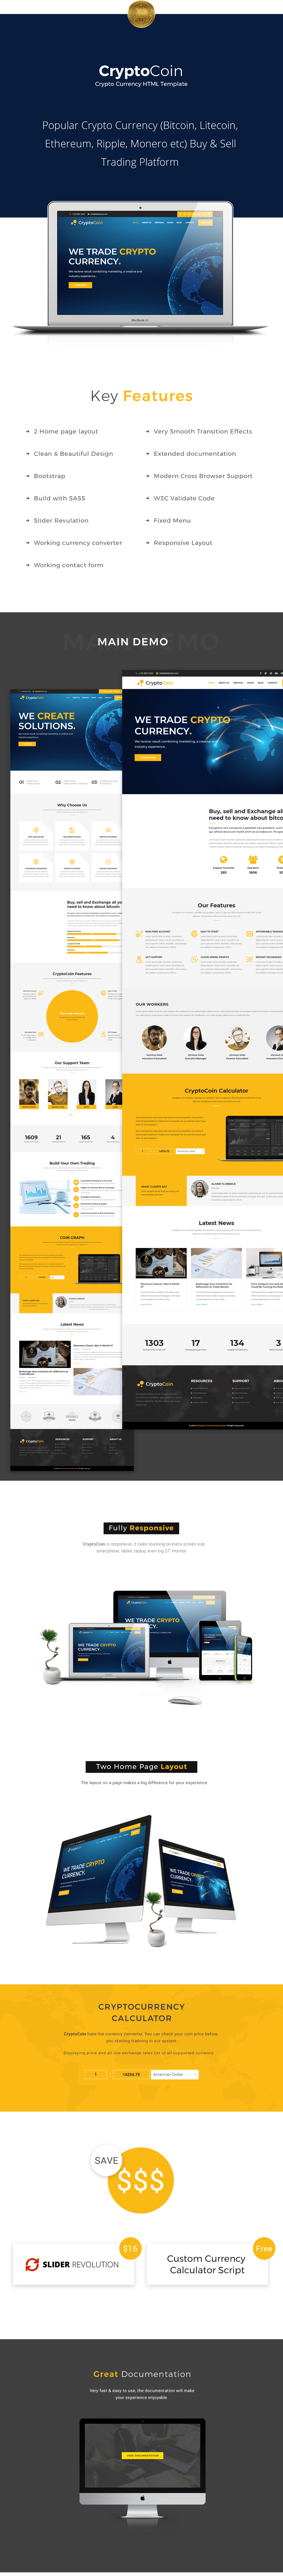 CryptoCoin - Crypto Currency HTML Template - 2